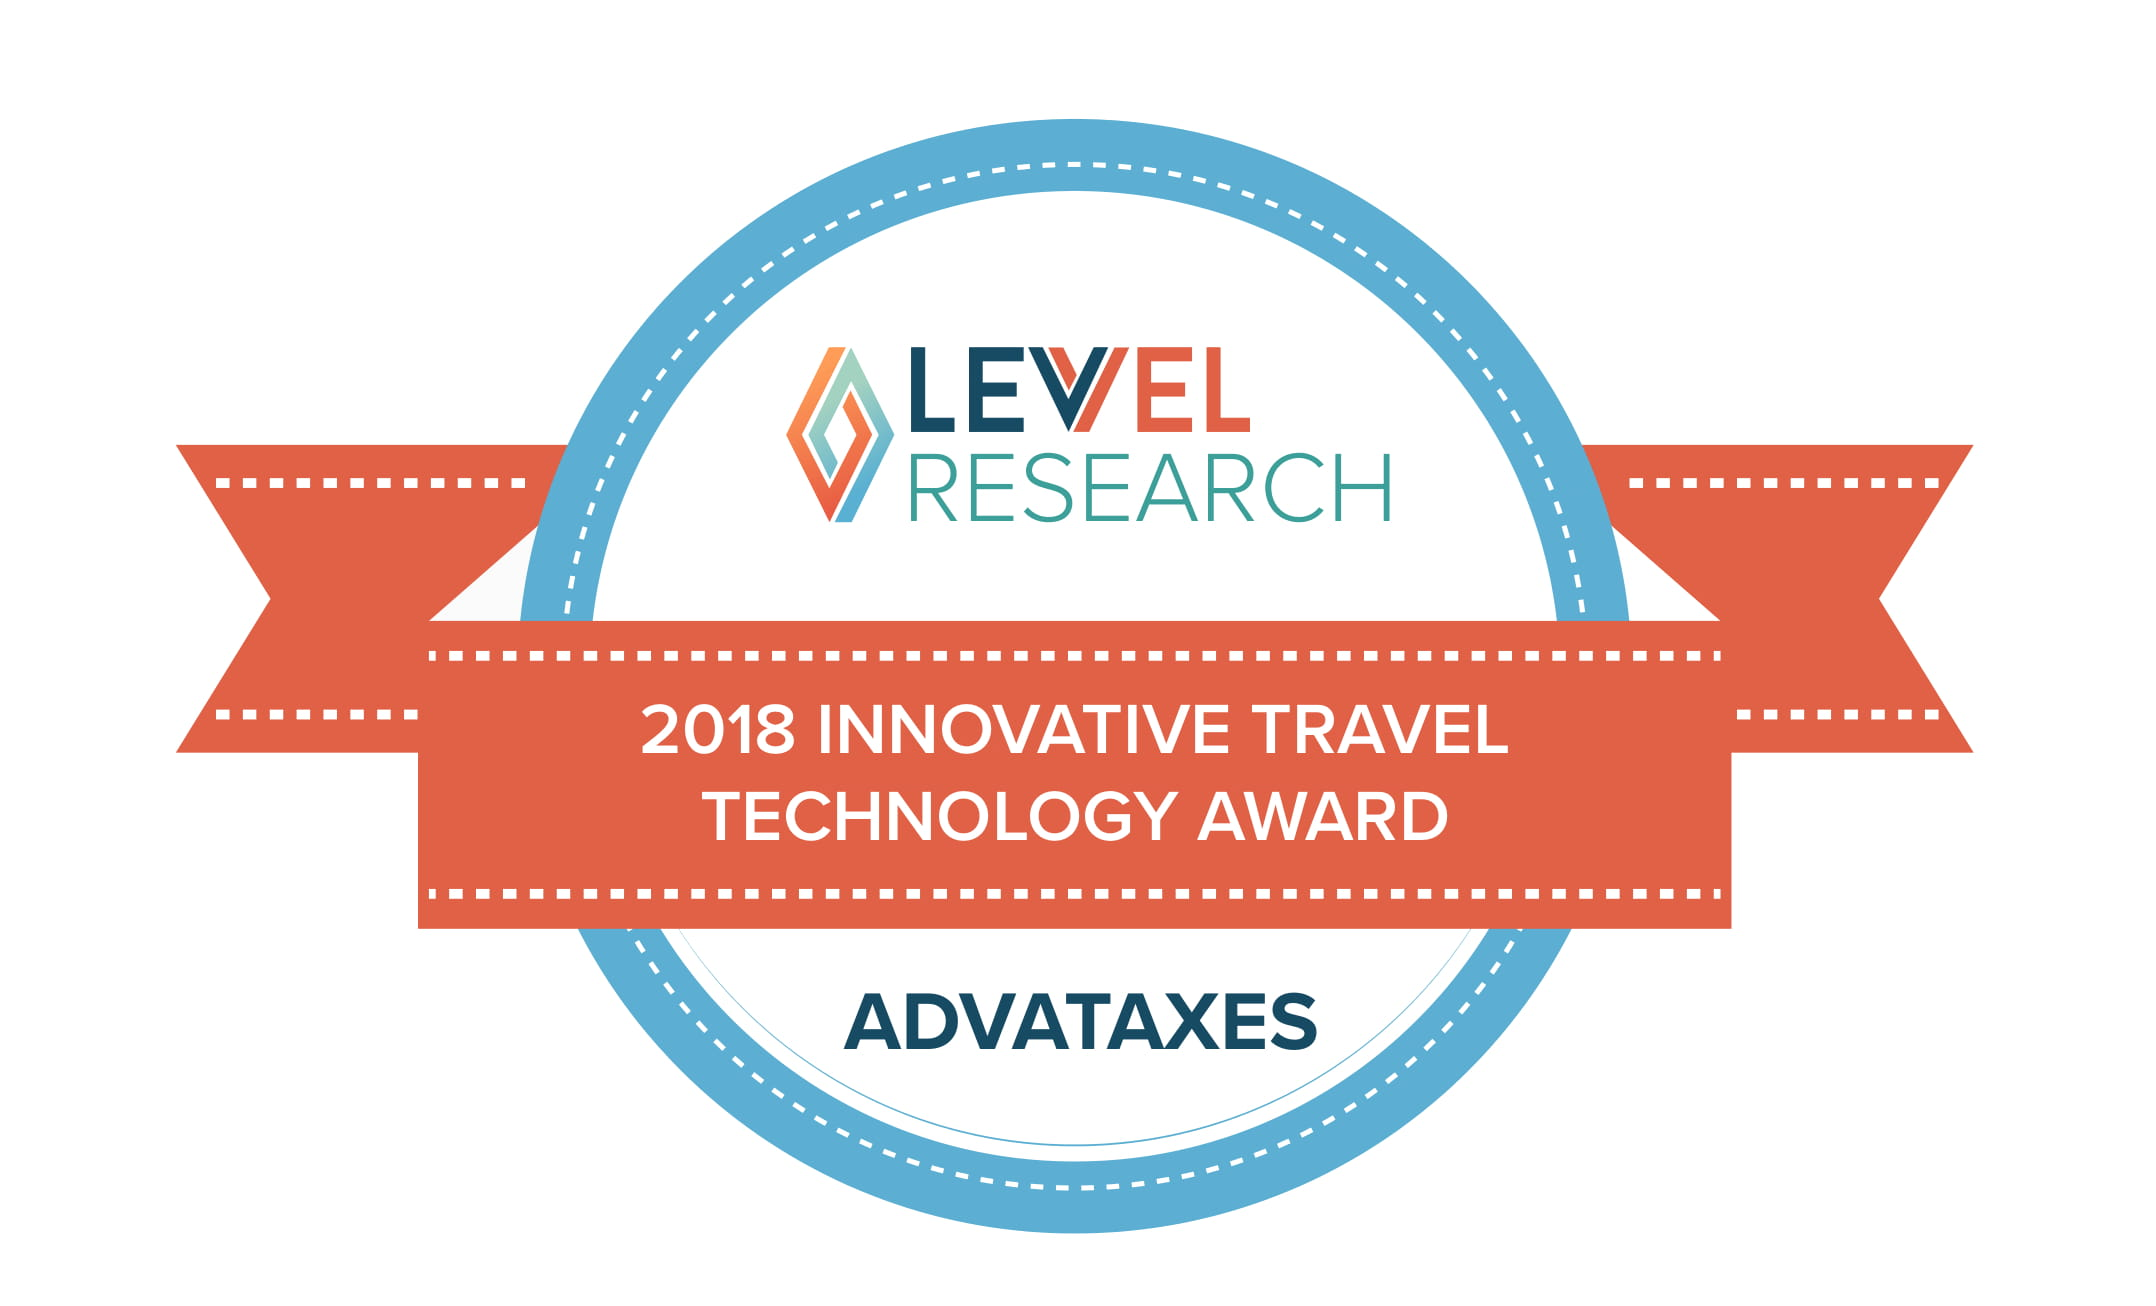 Advataxes Award